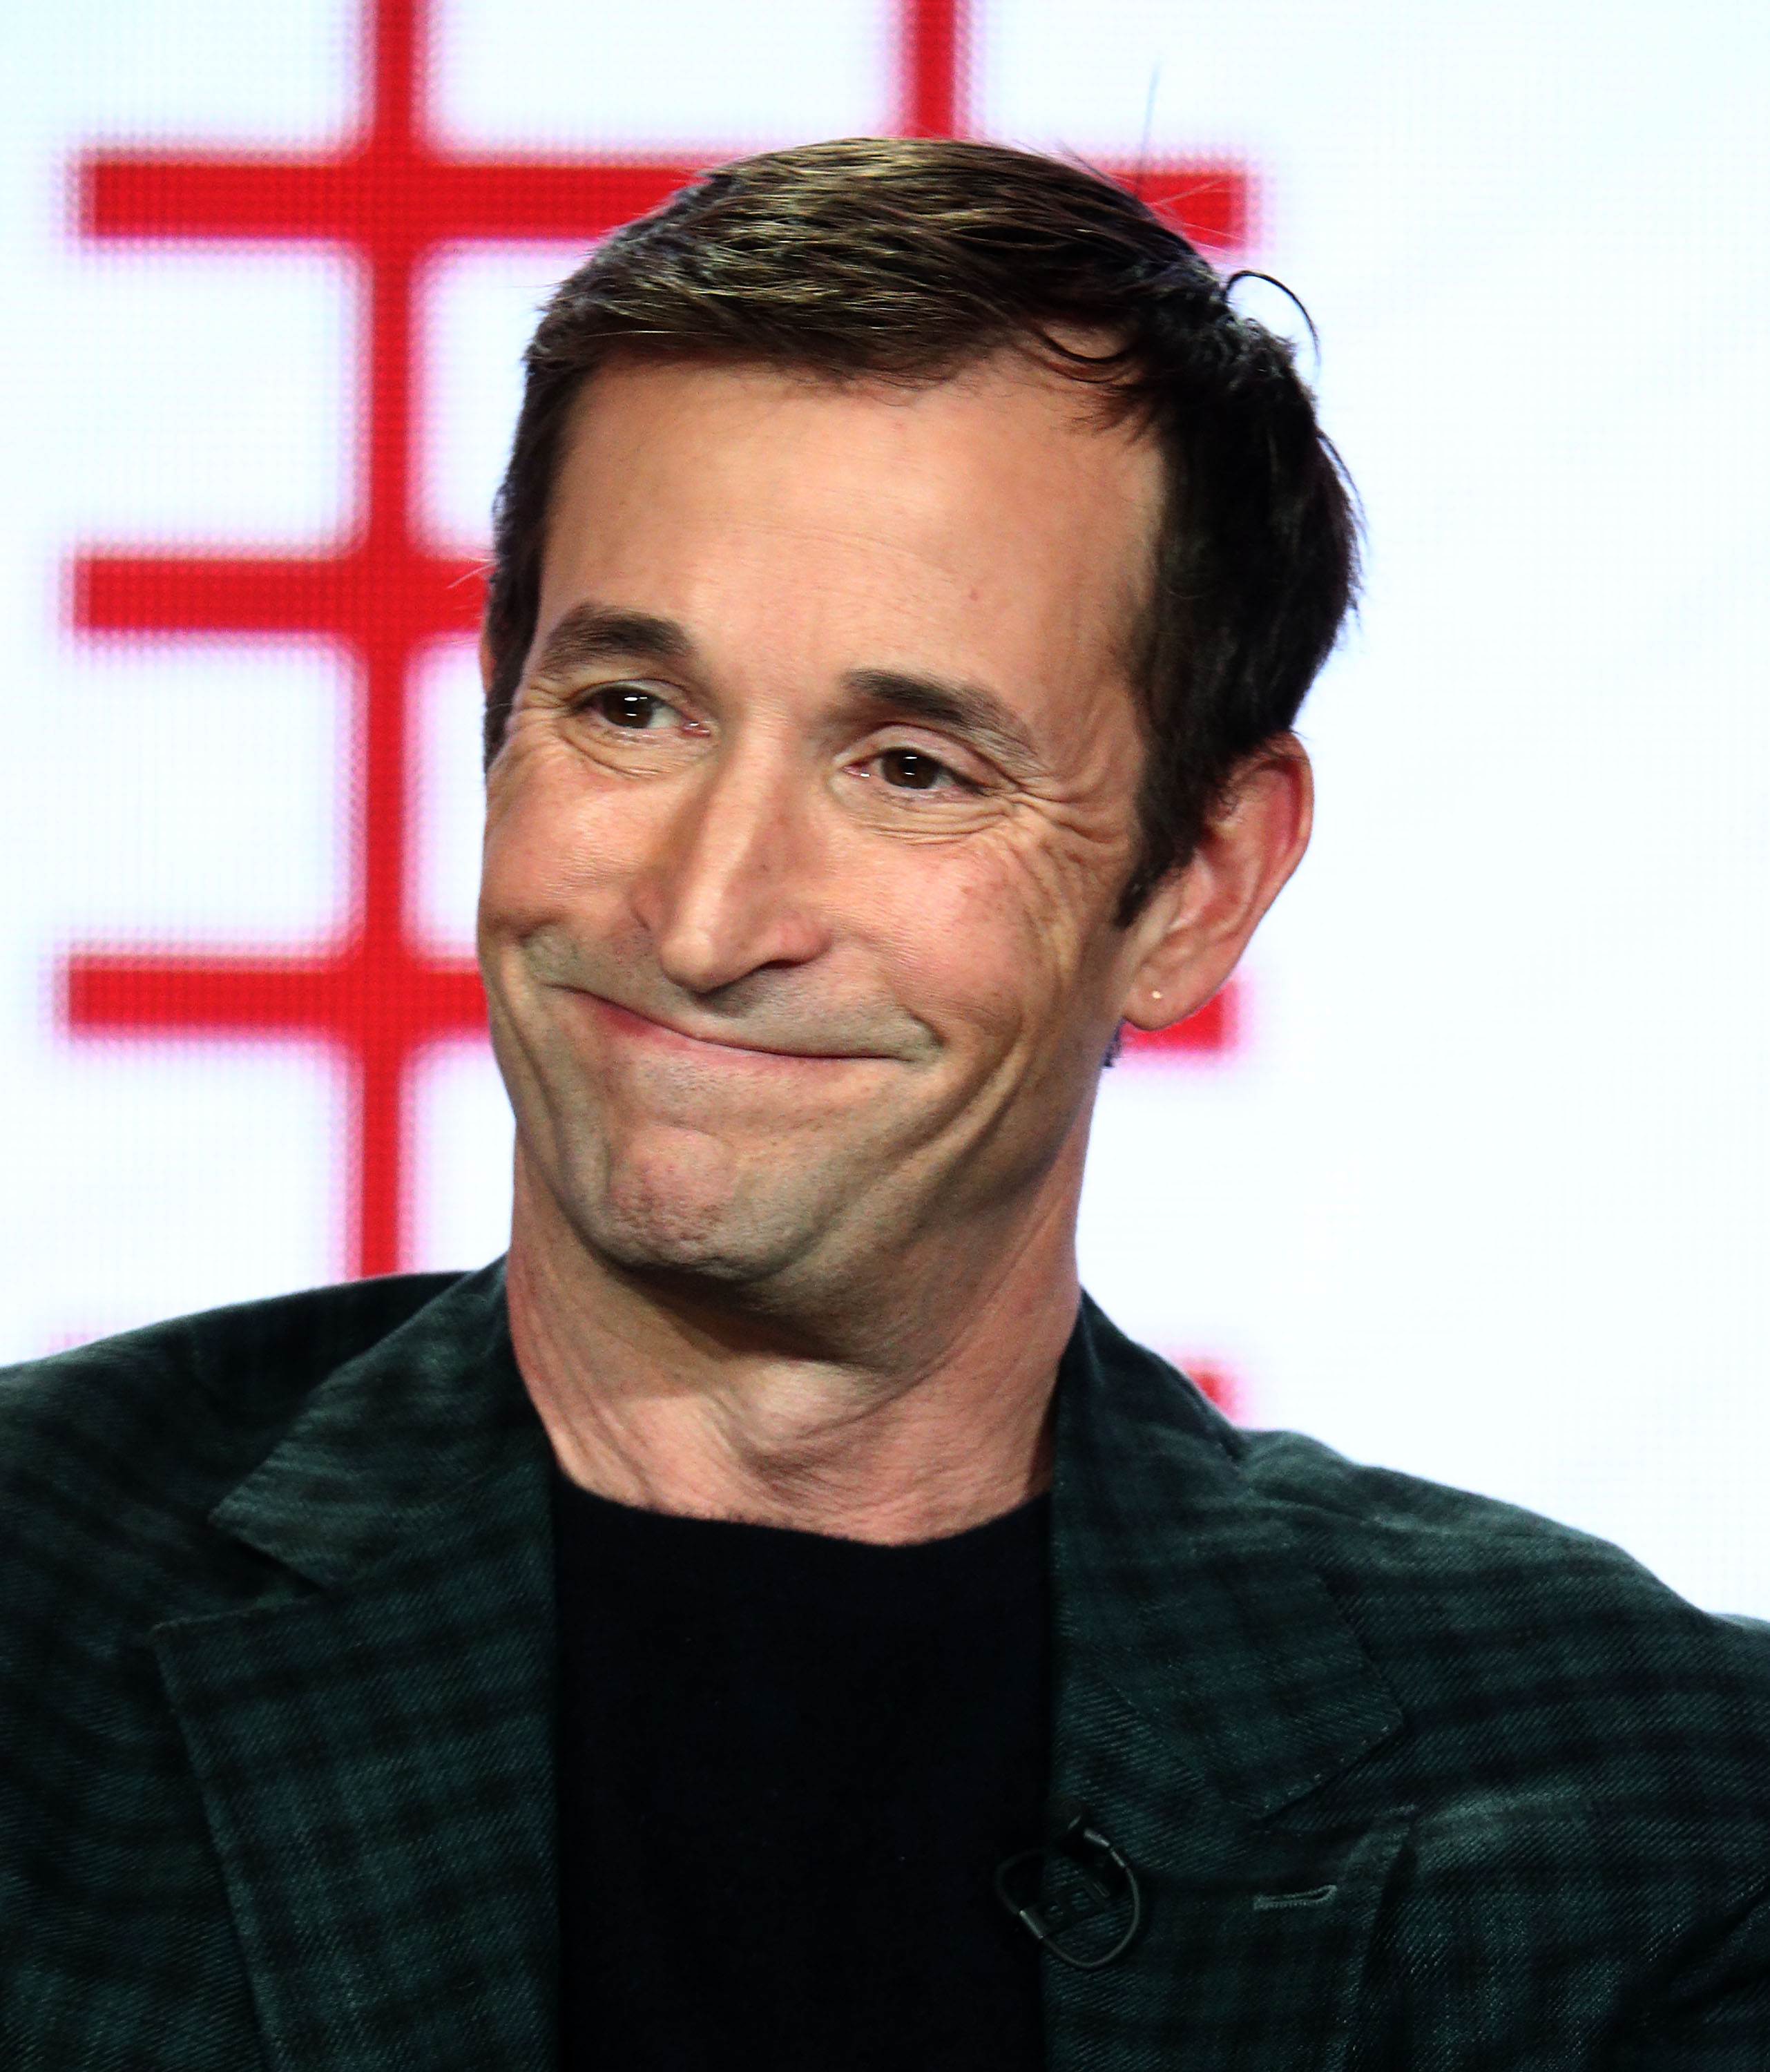 Actor Noah Wyle of the television show 'The Red Line' speaks during the CBS segment of the 2019 Winter Television Critics Association Press Tour at The Langham Huntington, Pasadena on January 30, 2019, in Pasadena, California. (Getty Images)